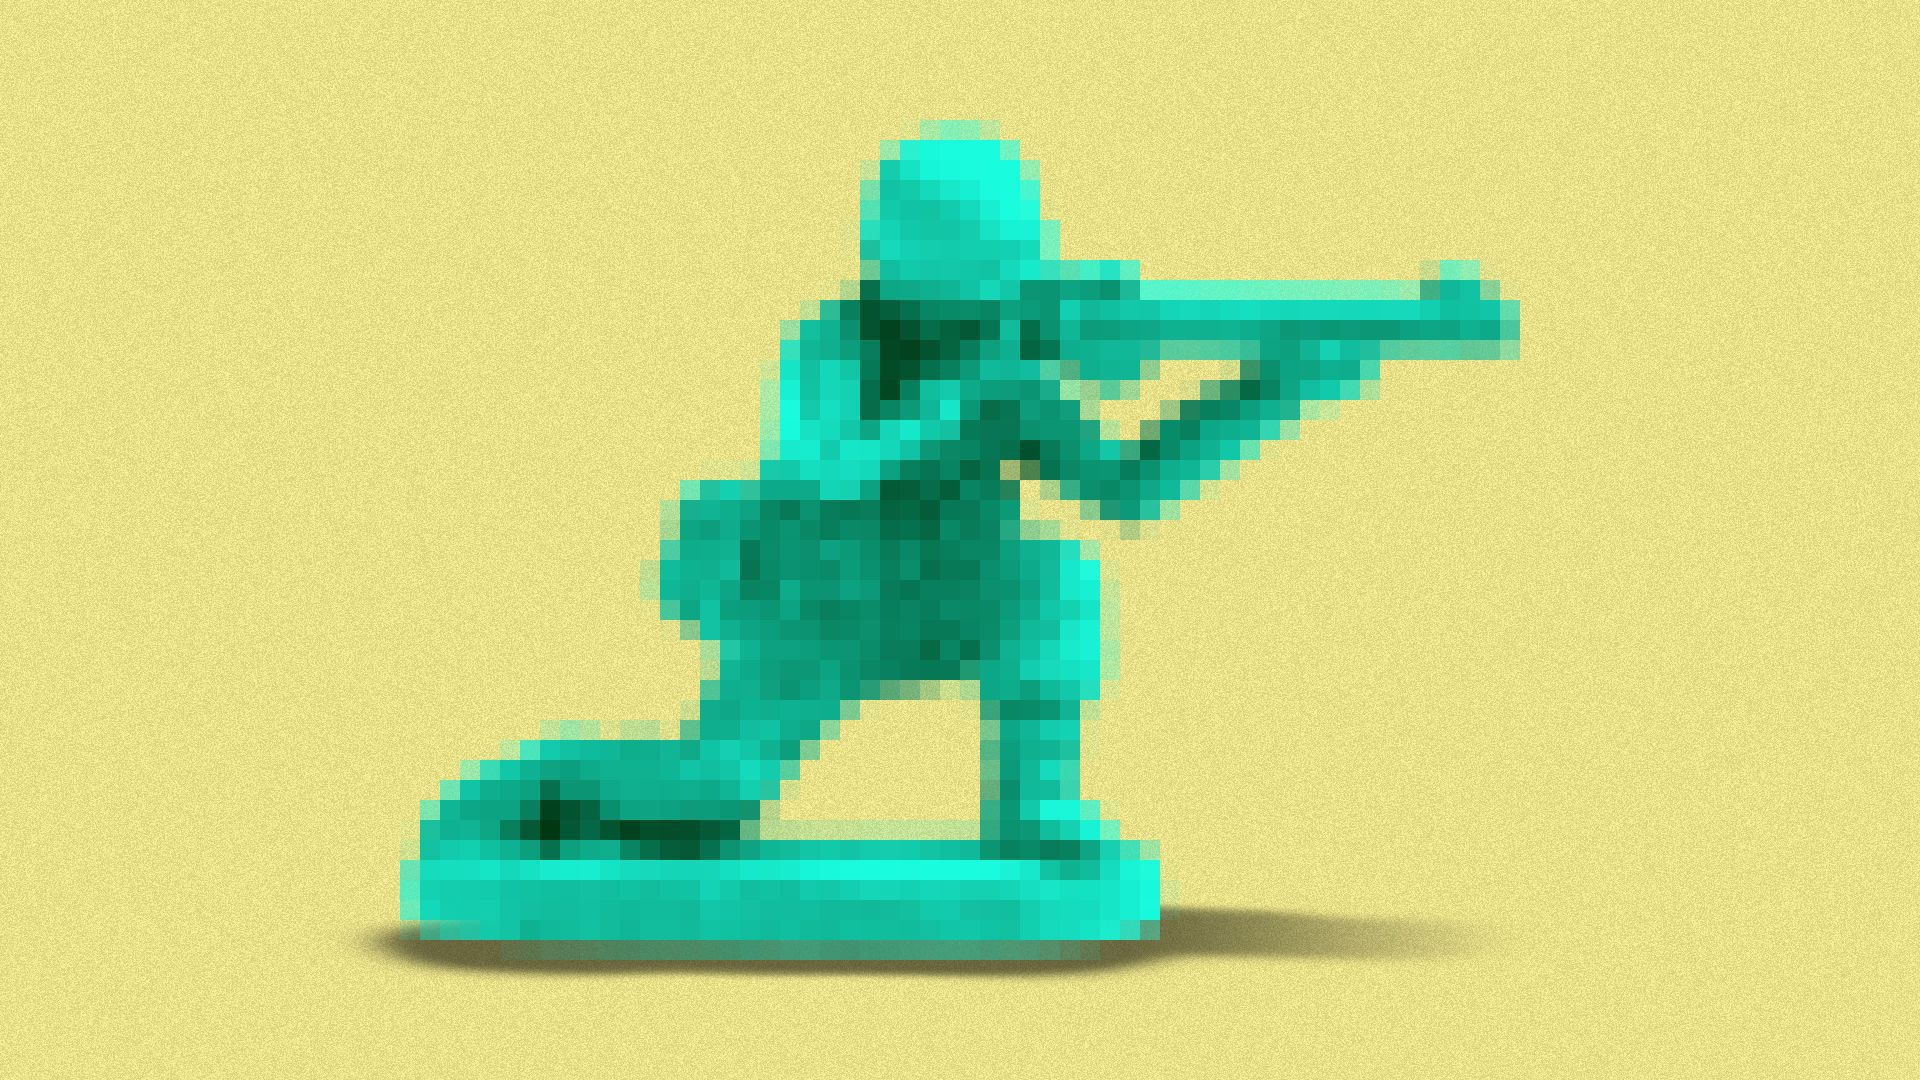 Illustration of a pixelated toy soldier.